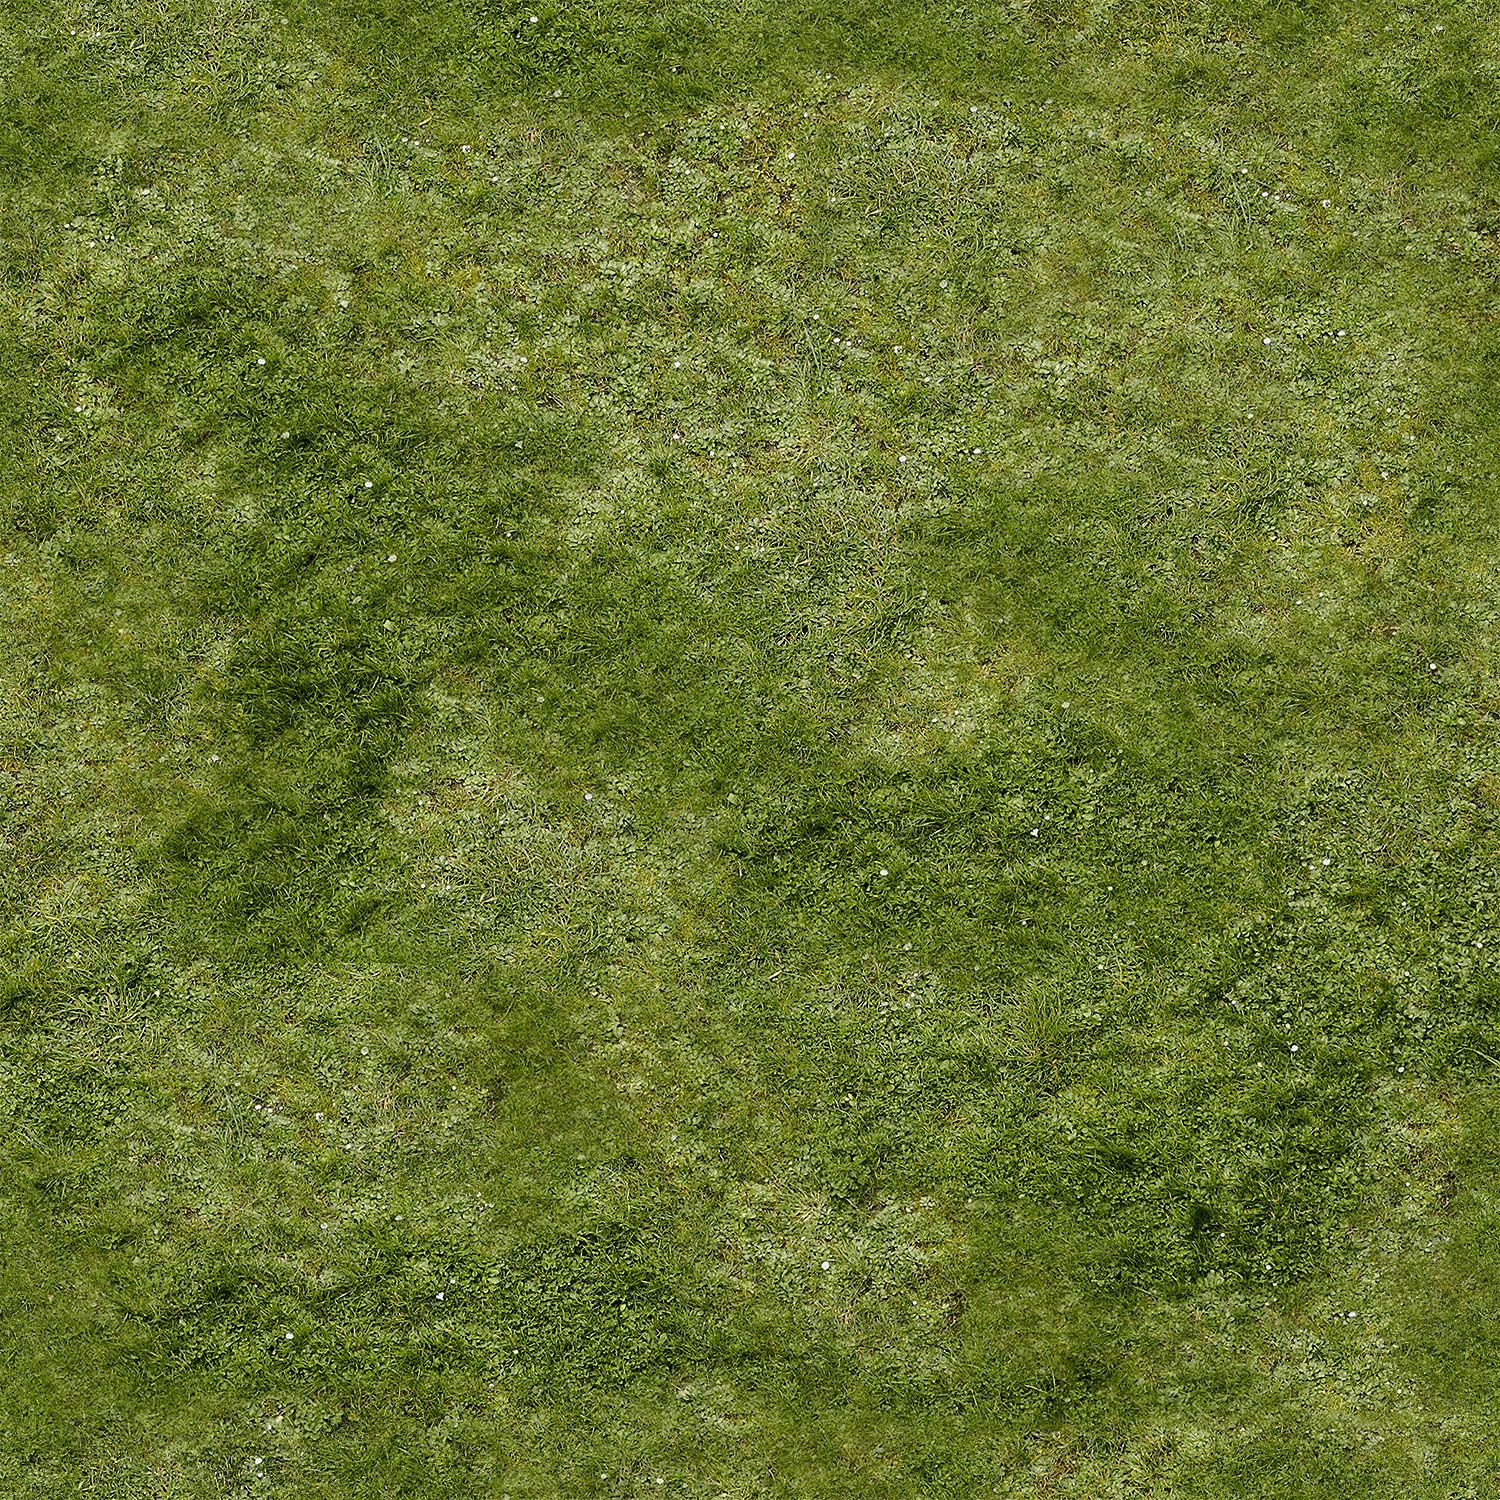 repeating stone texture | Repeating Grass Texture ...